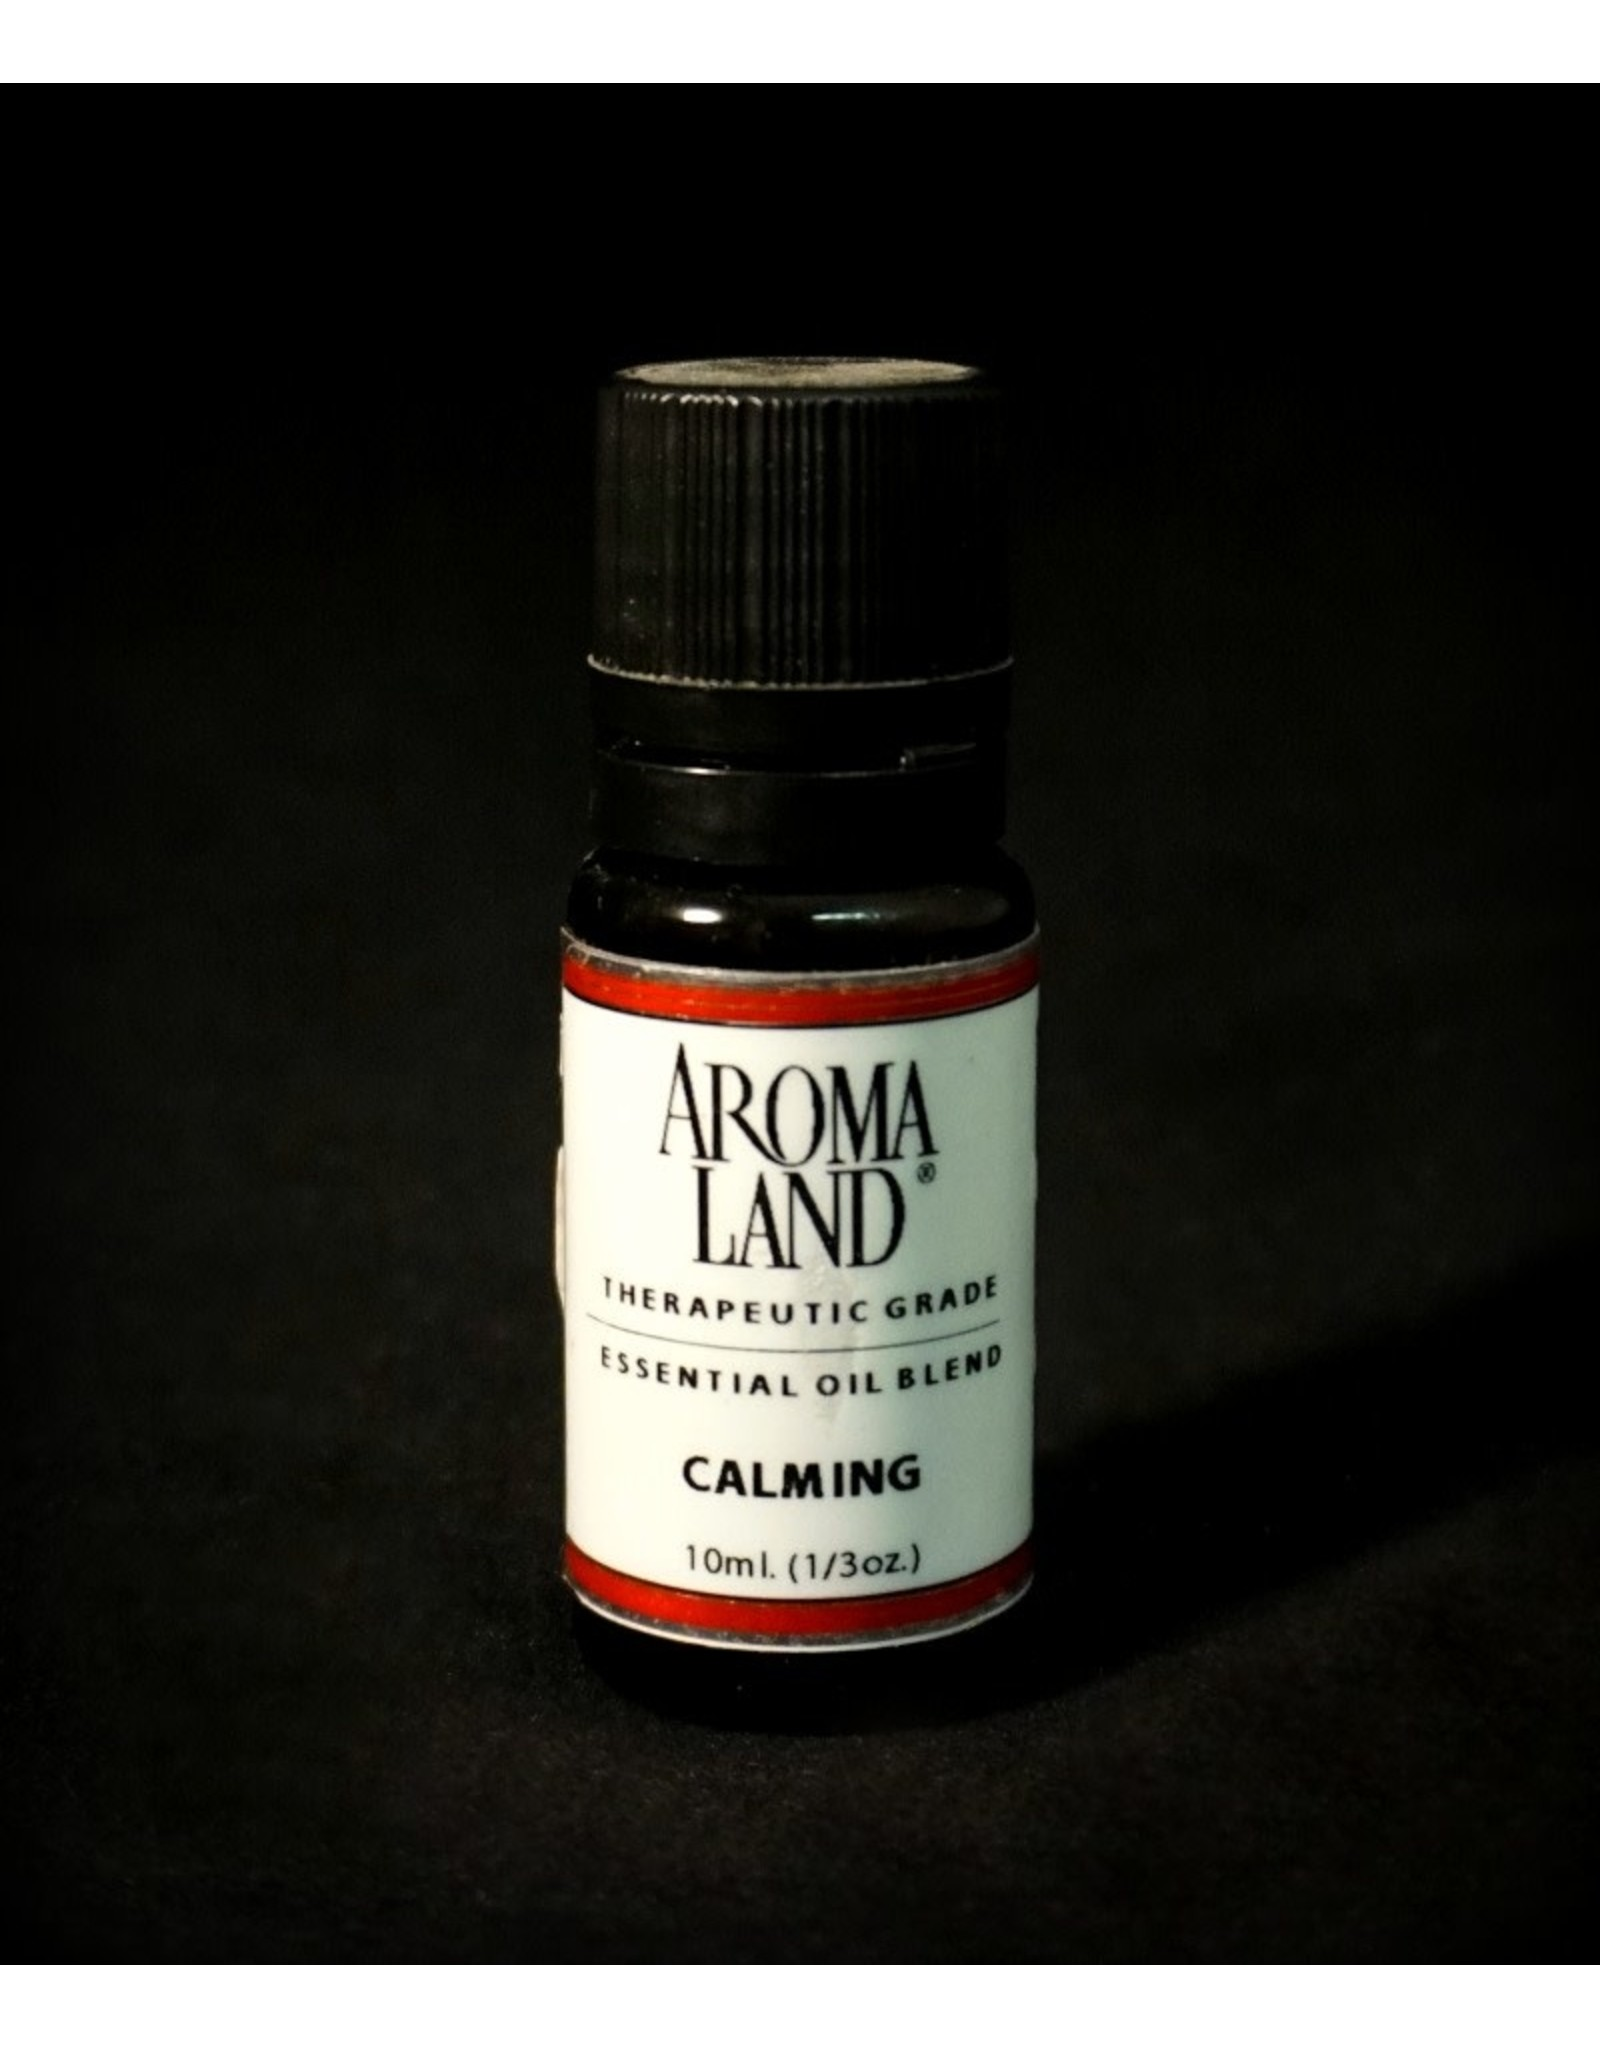 Aromaland Essential Oil Blend - Calming